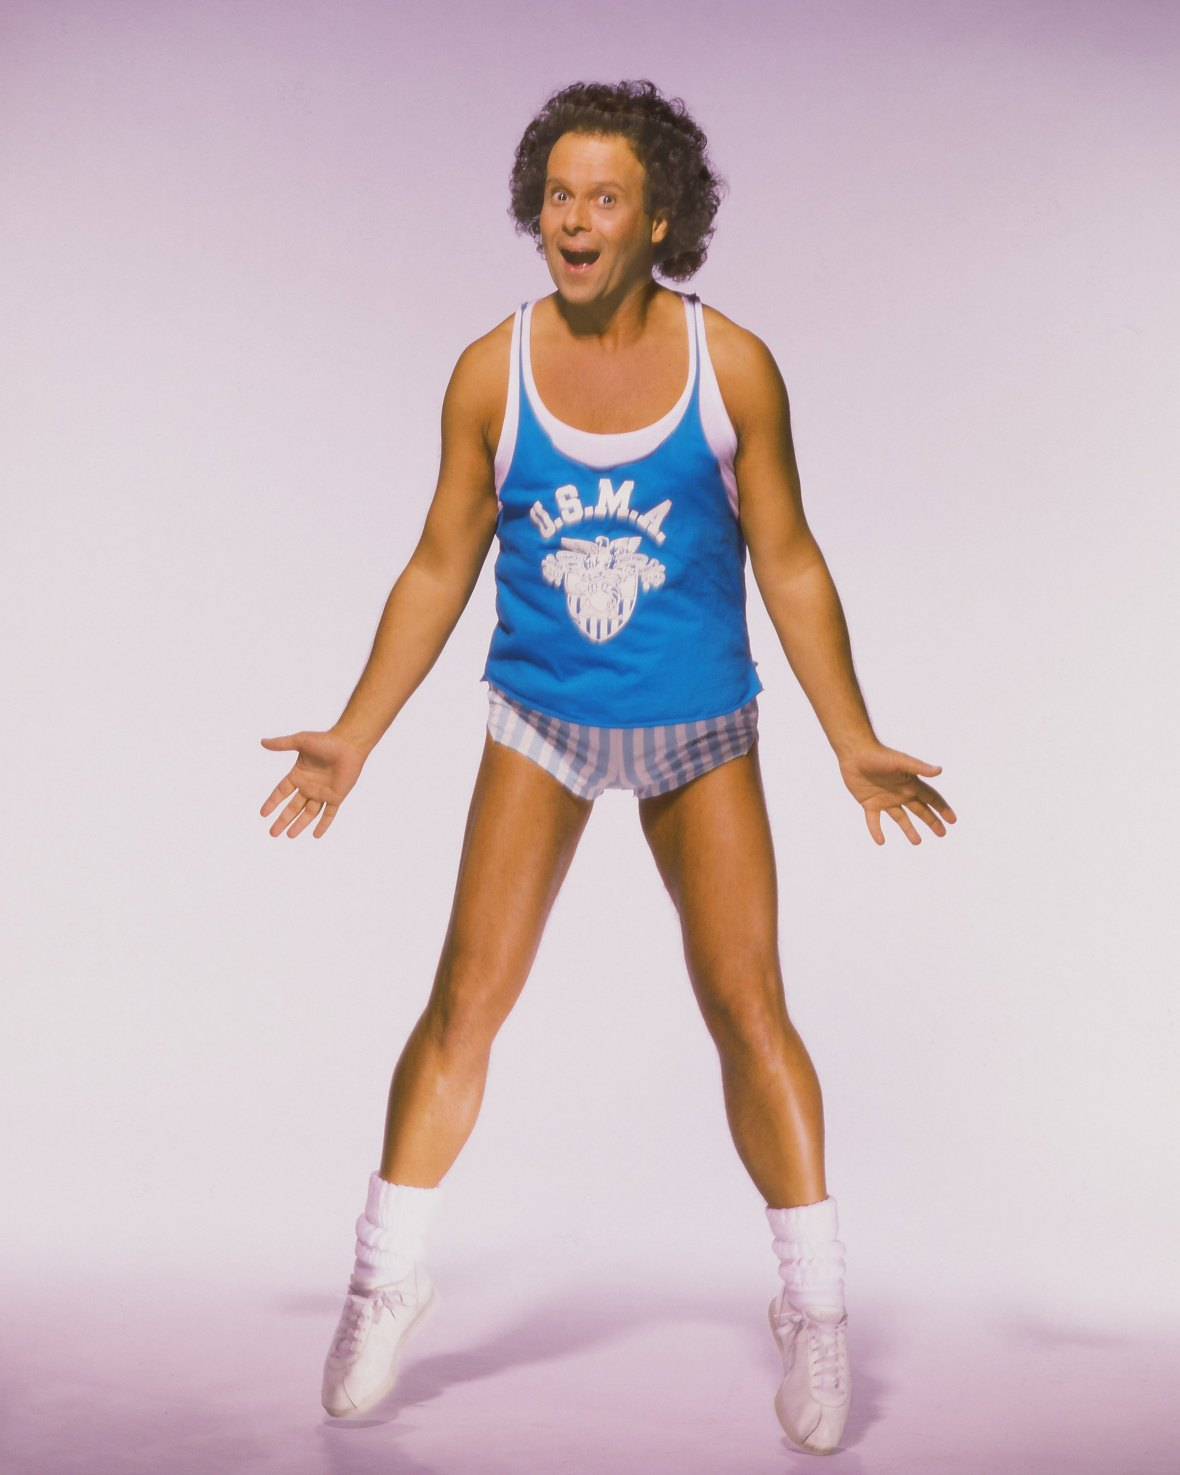 richard simmons' health